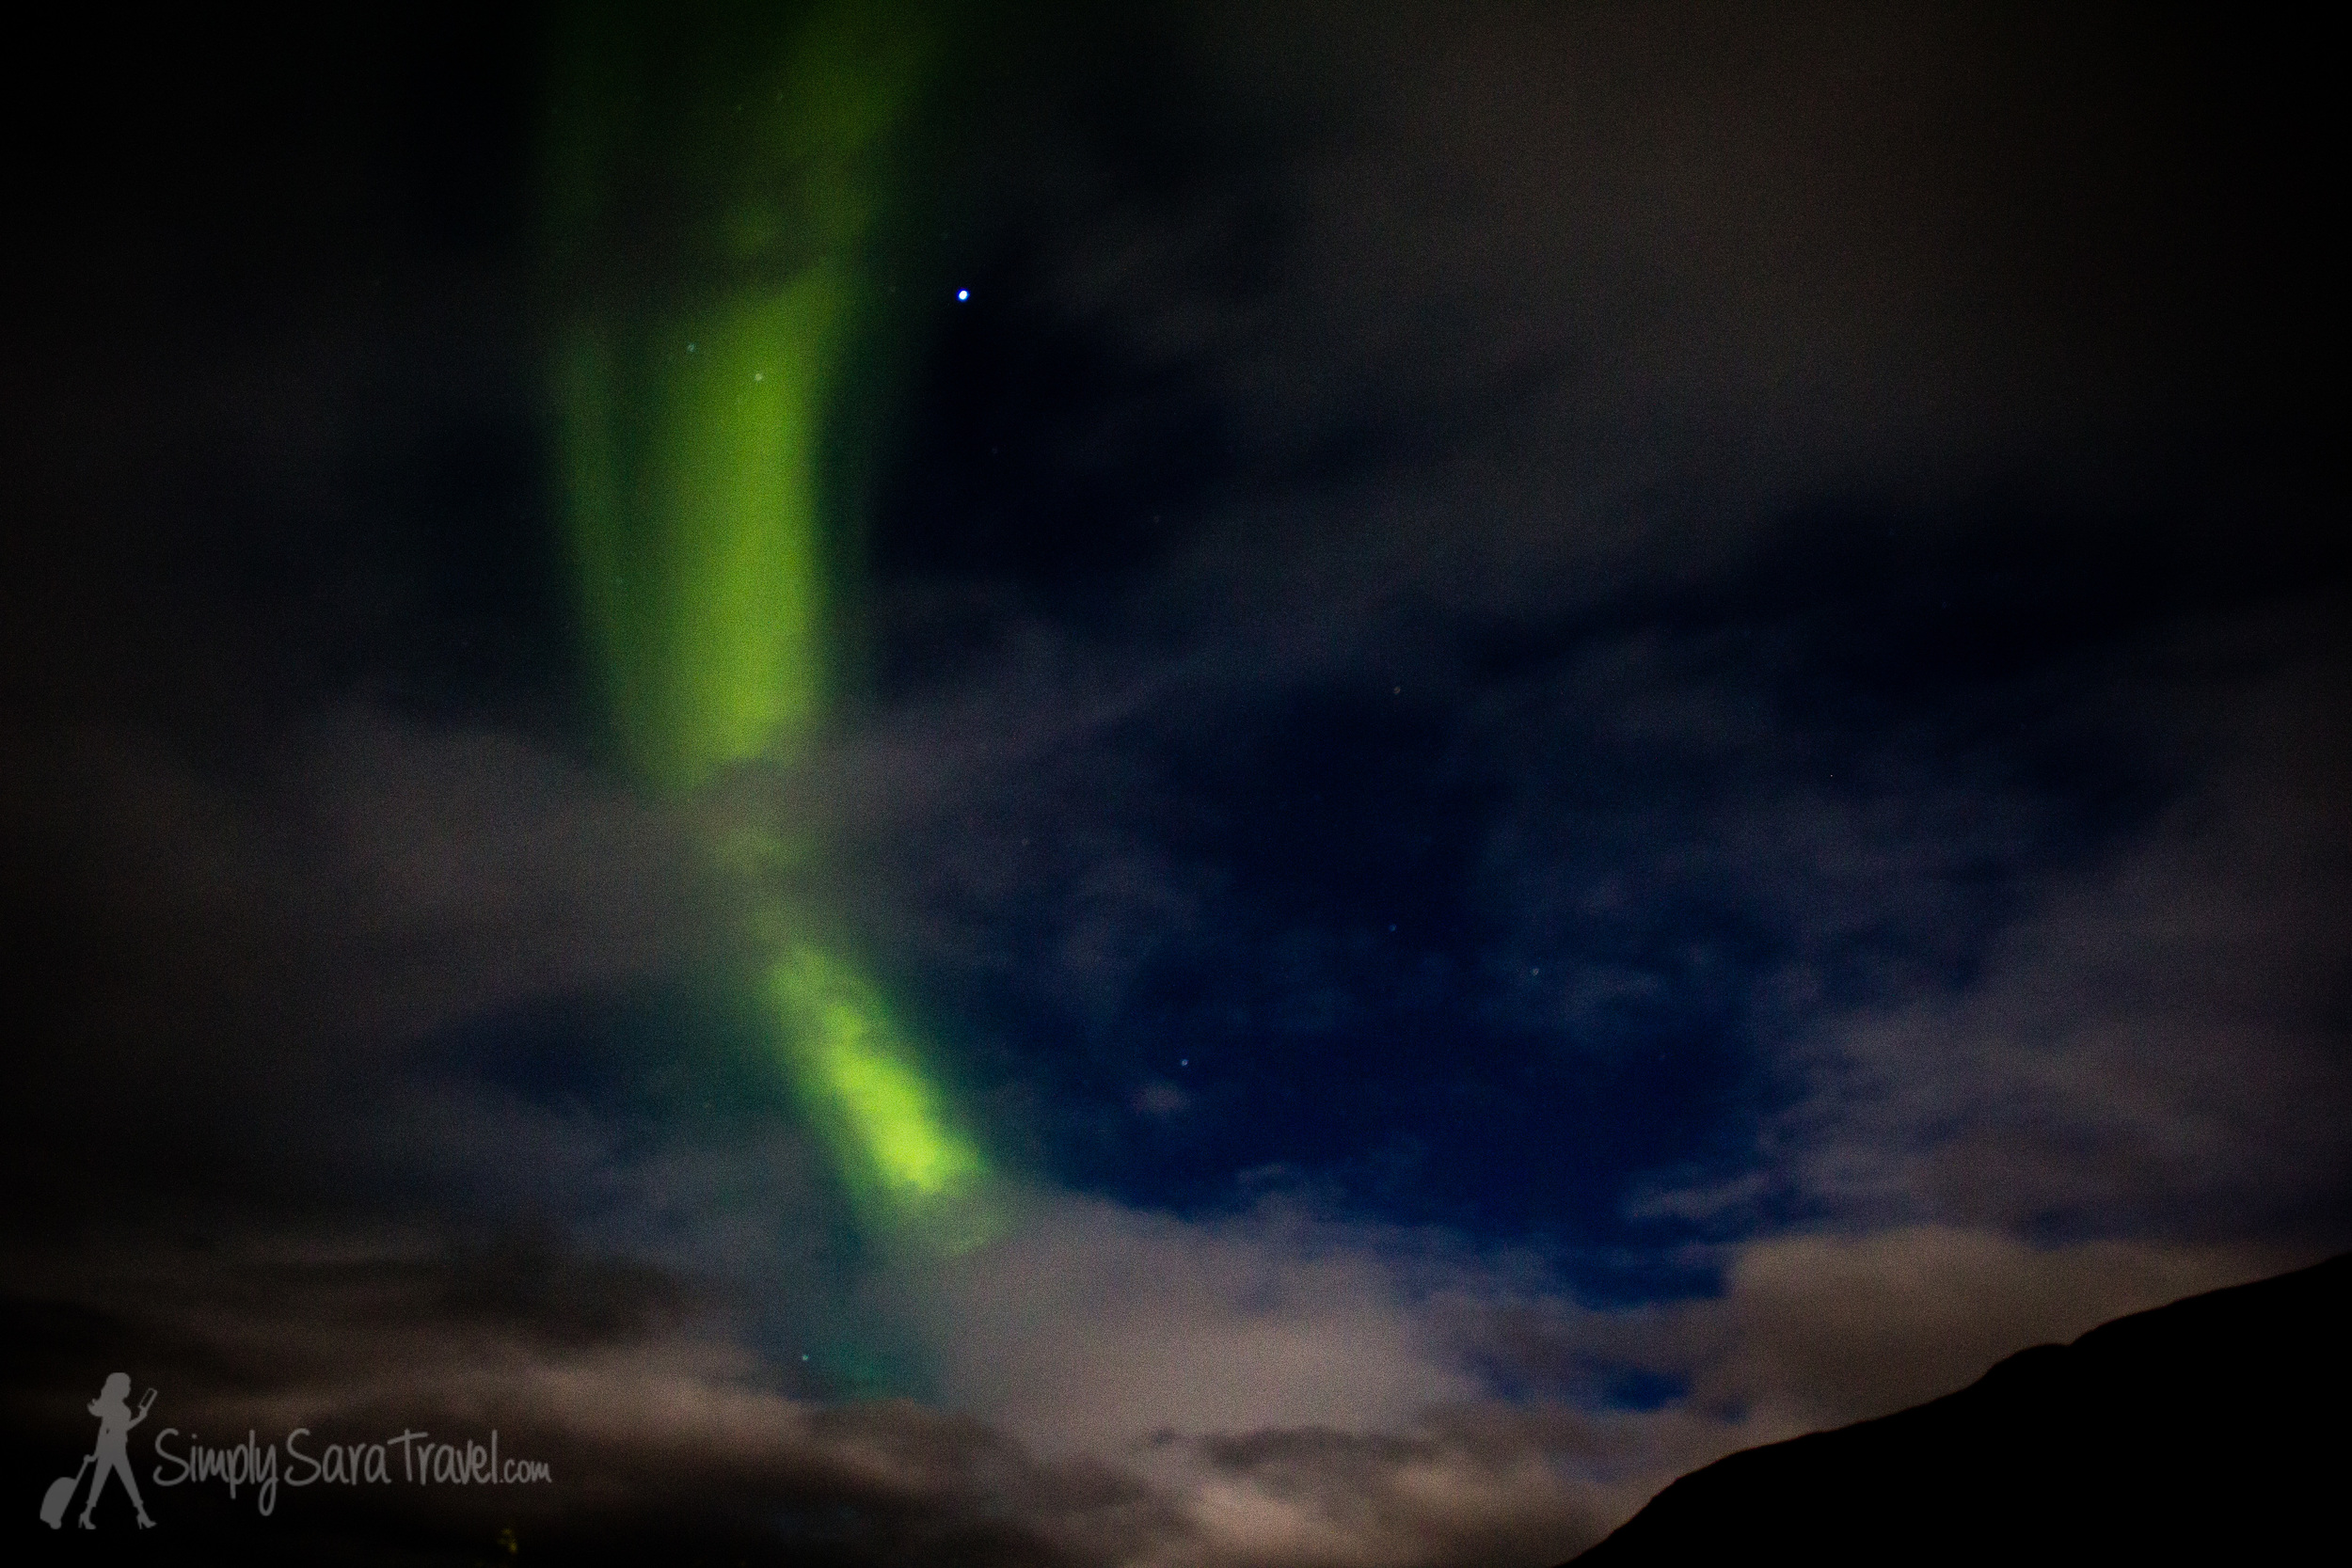 I was able to see the Northern Lights for my first time in Iceland in October! We were up against pretty cloudy nighttime skies the whole trip so we were really fortunate to see anything at all. It's never a guarantee to see them, but a nice bonus to an Icelandic venture if you happen to catch them in the winter months.